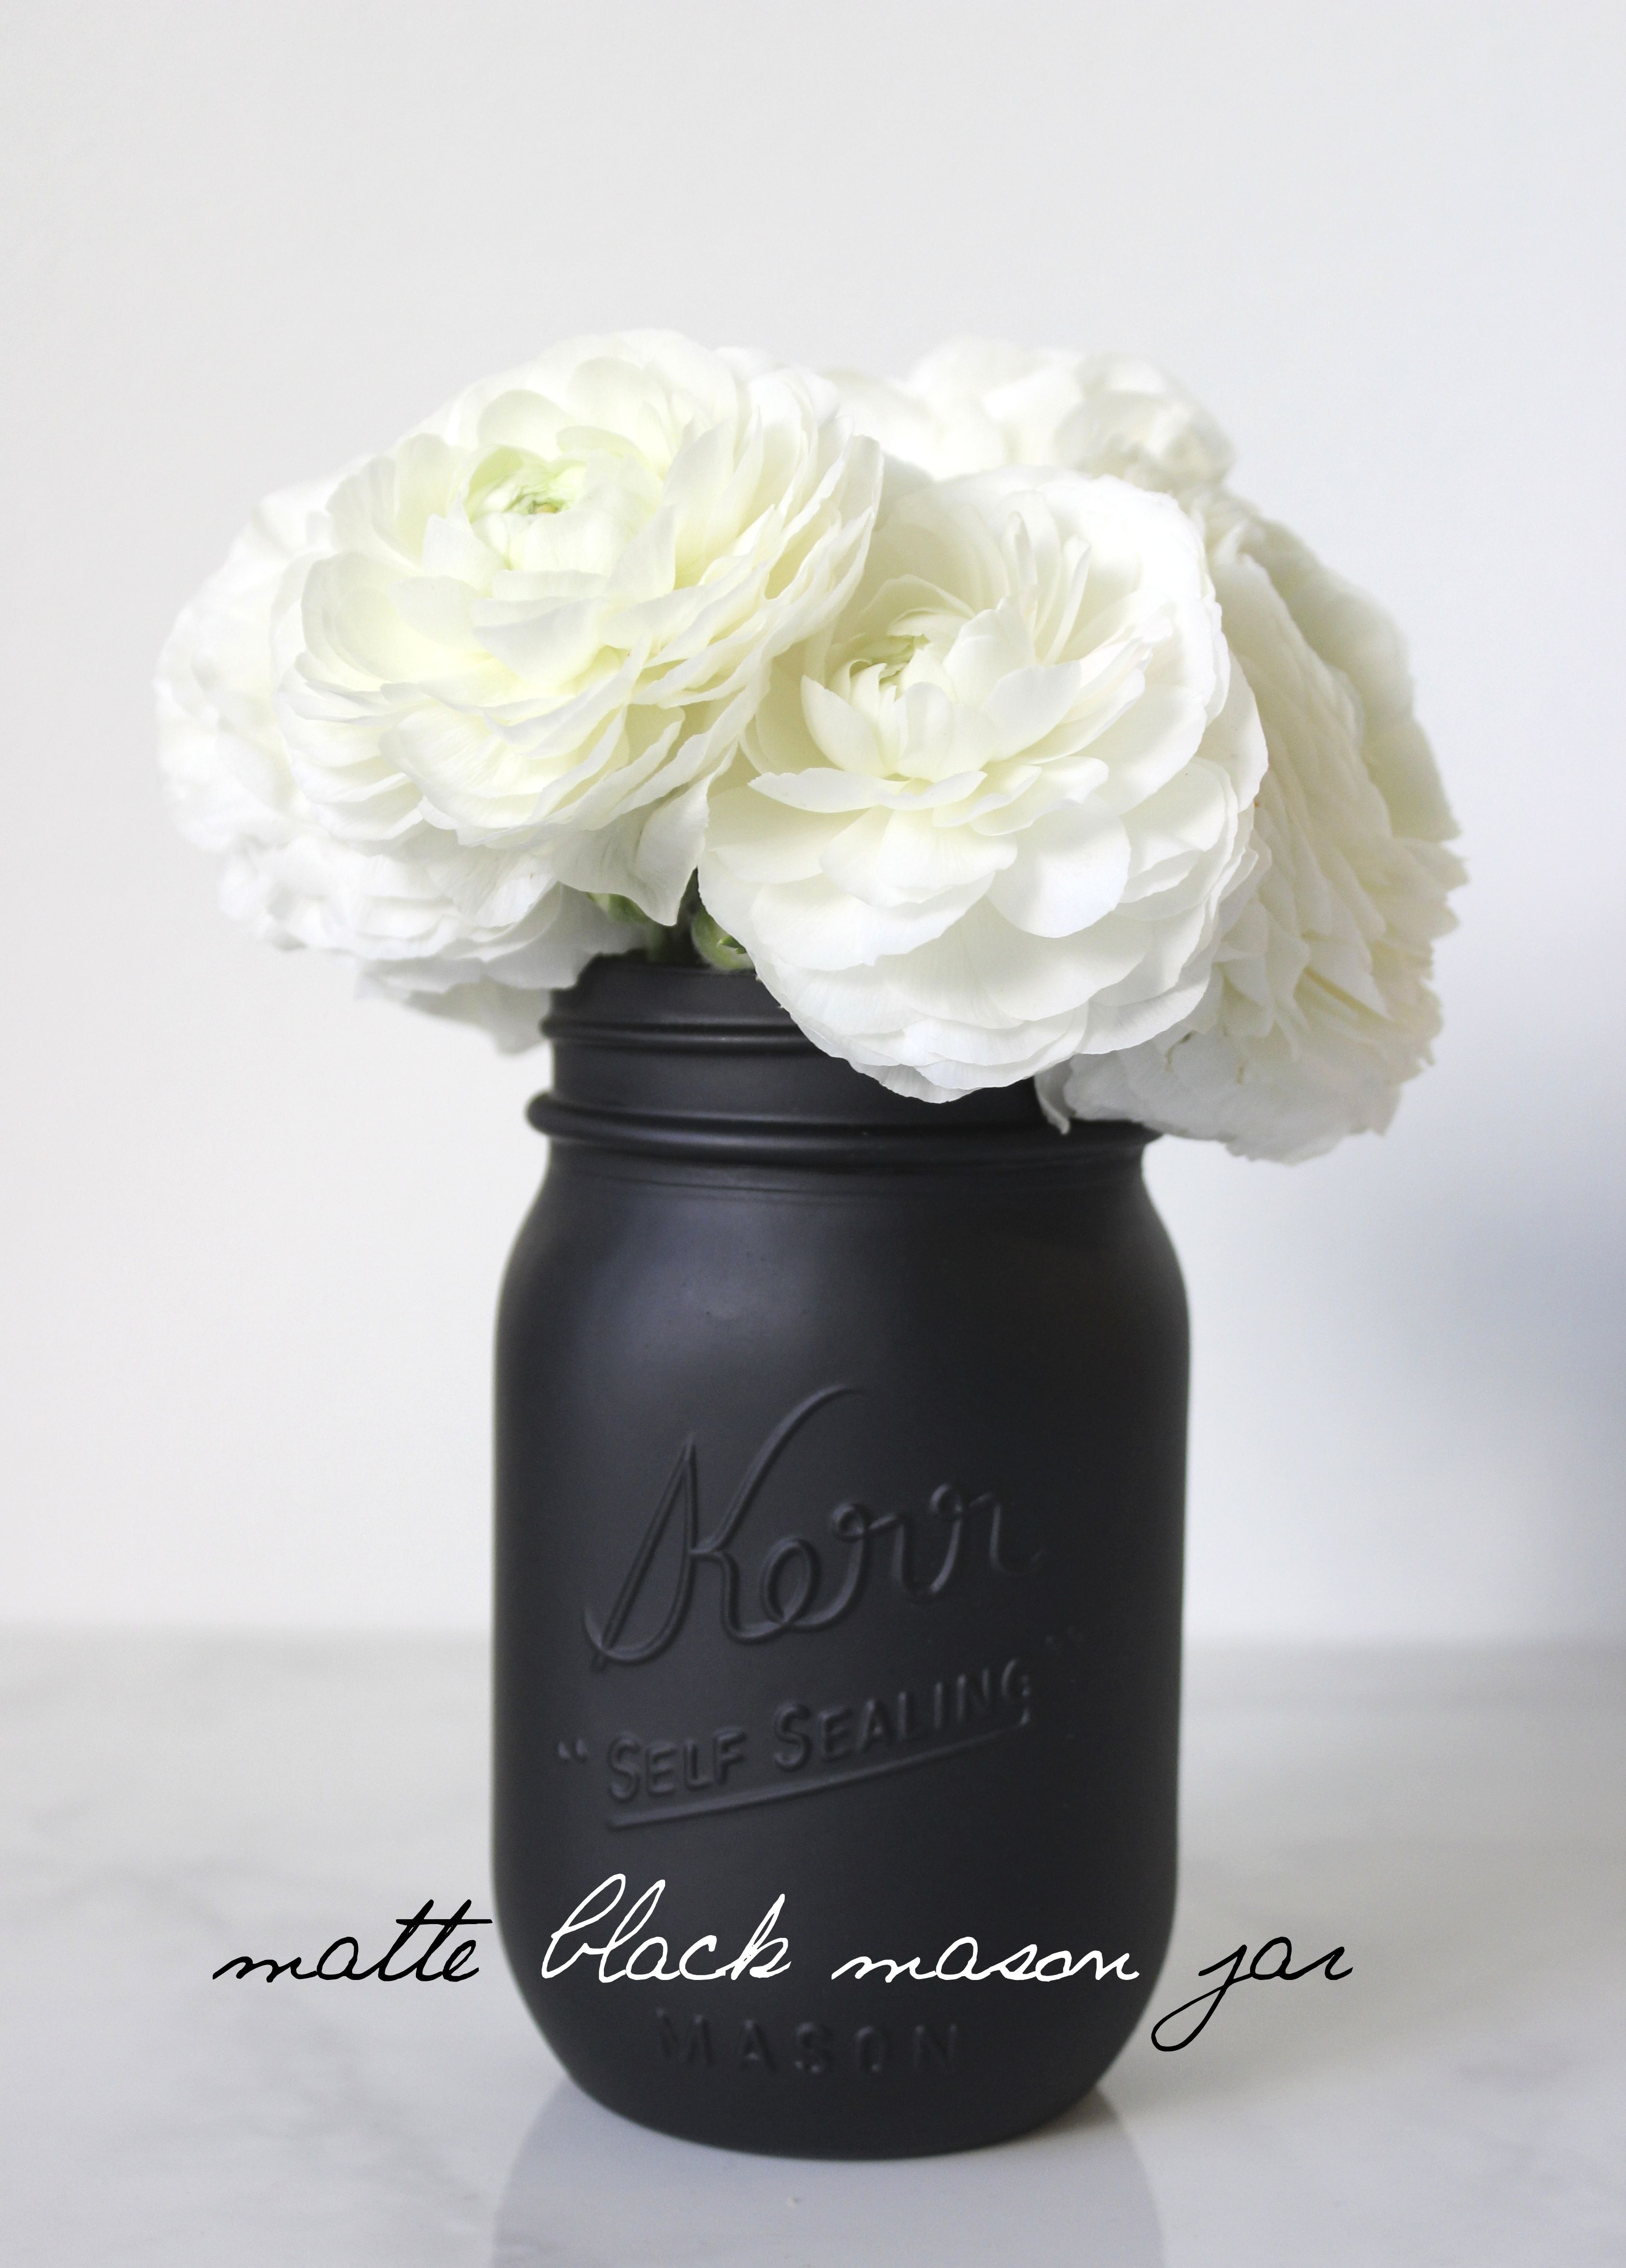 You Can Complete The Look Of A Room Or The Theme Of A Party In Just Seconds With These Painted Jars Description Fro Matte Black Mason Jar Room Diy White Decor